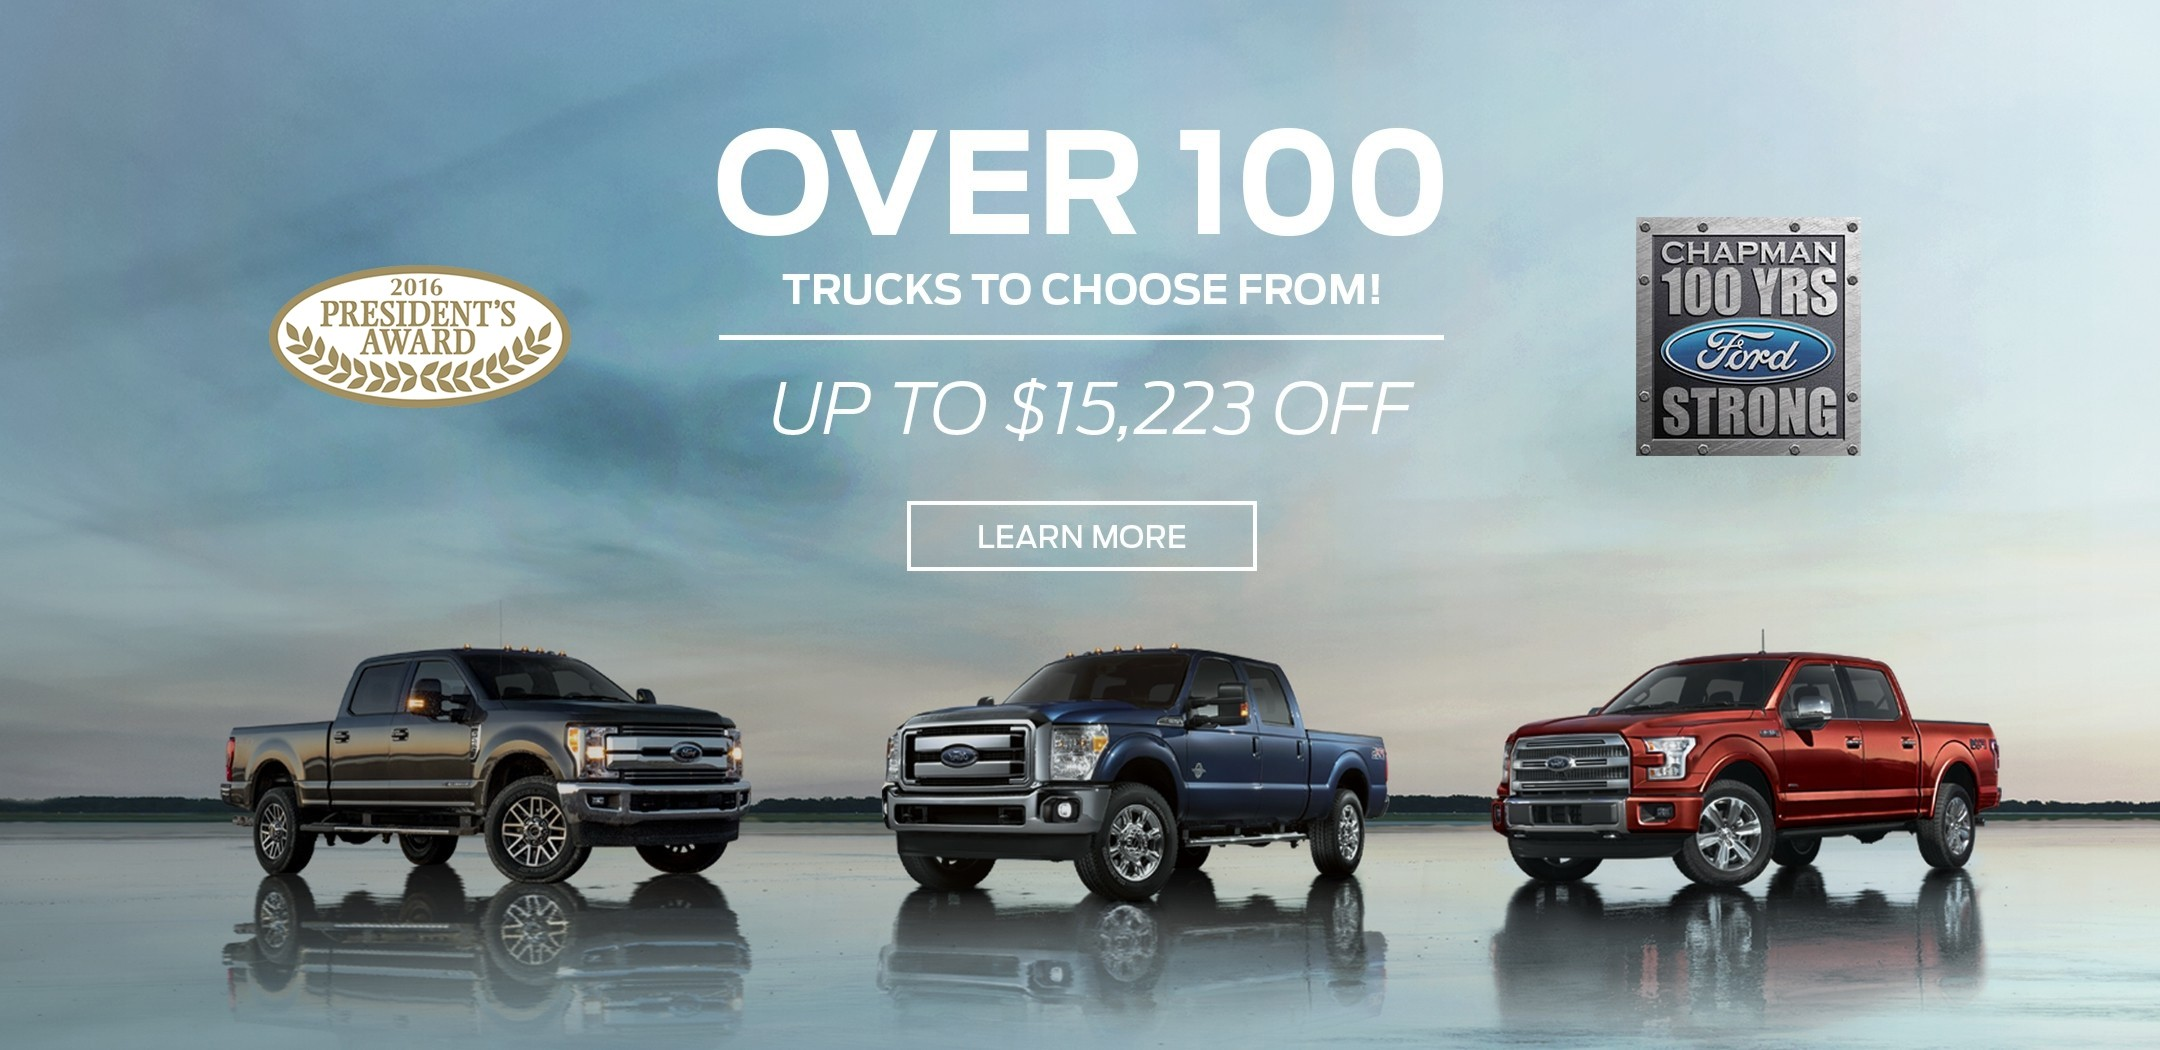 Truck on sale at Bob Chapman Ford